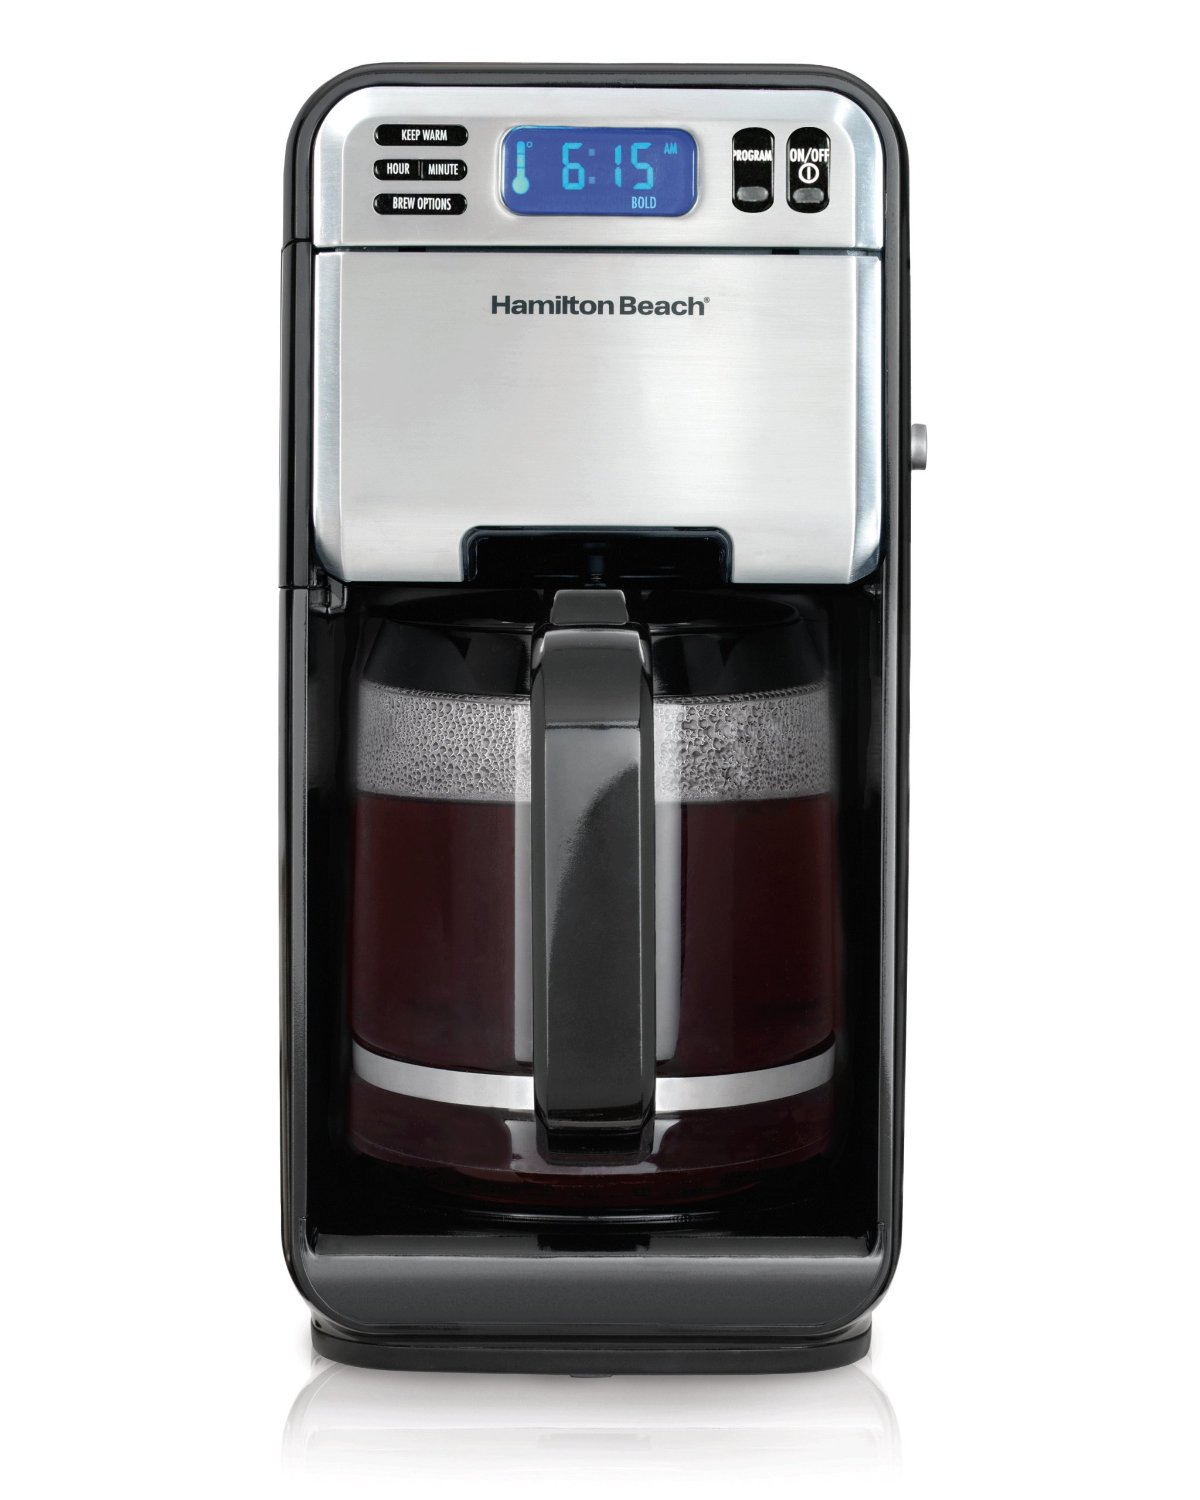 Hamilton Beach 12 Cup Programmable Coffee Maker Image